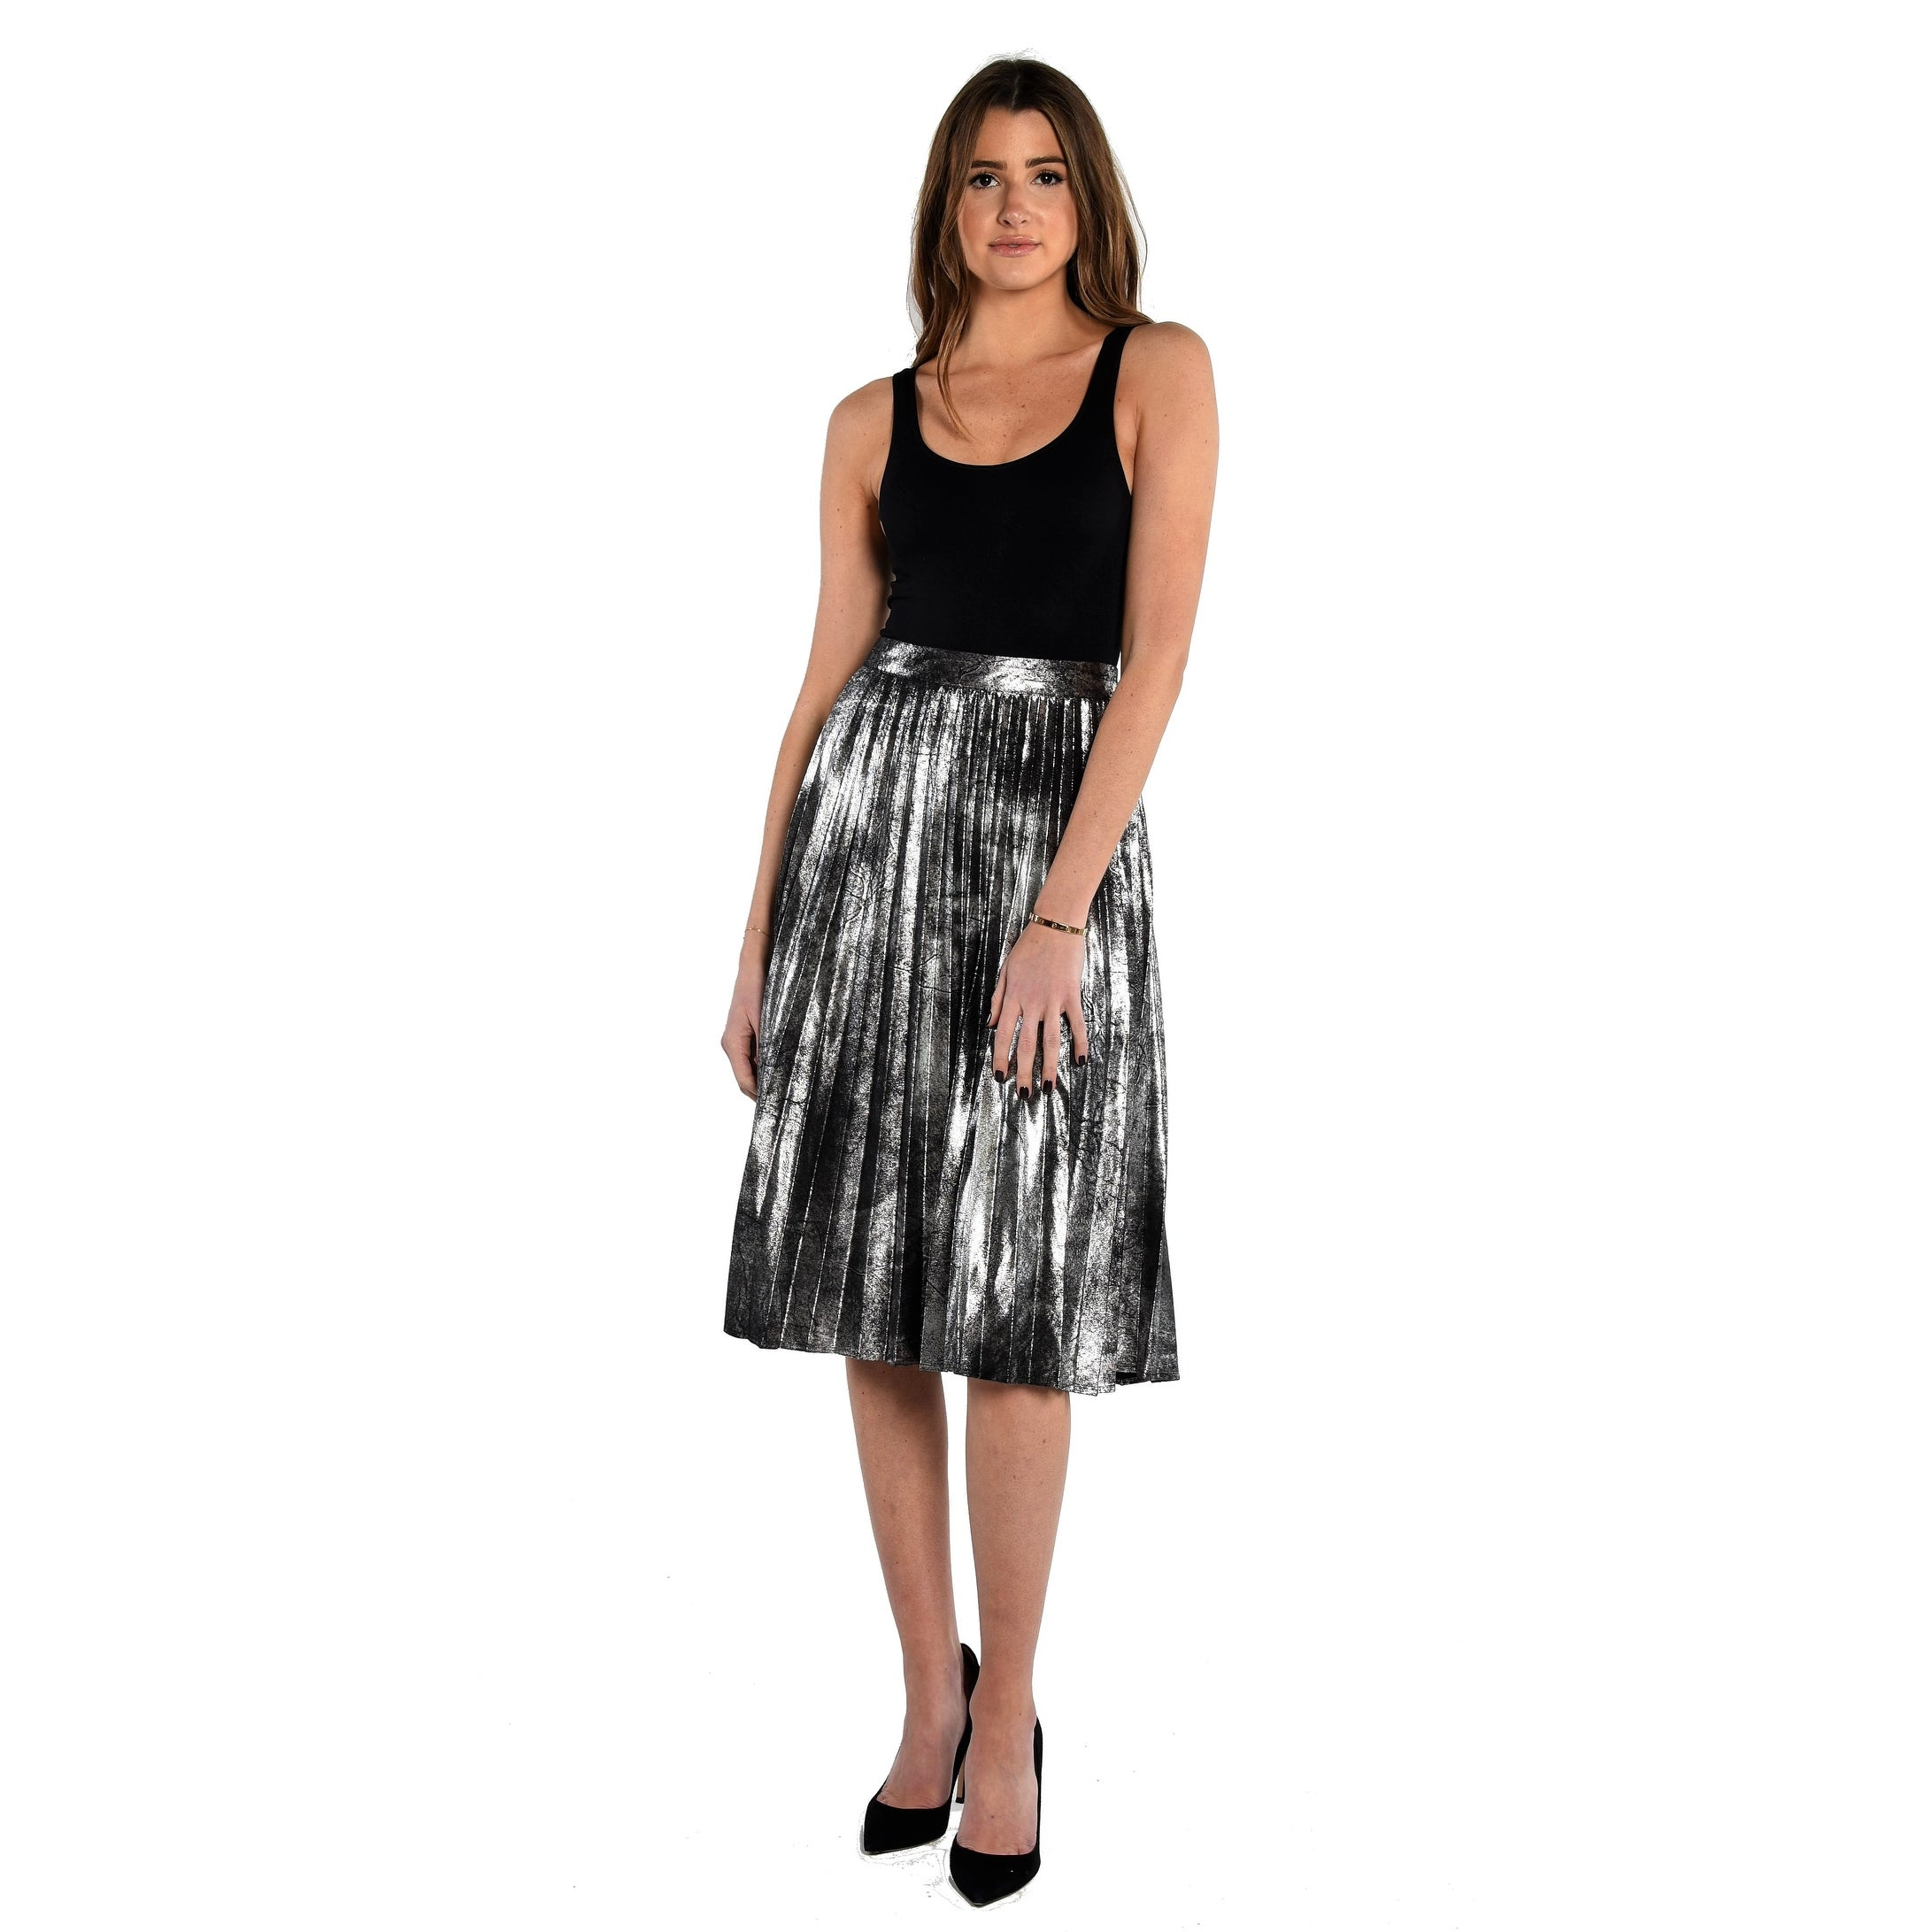 f95c3364bb Shop Vince Camuto Foiled Suede Pleated Skirt - Free Shipping Today -  Overstock - 20467440